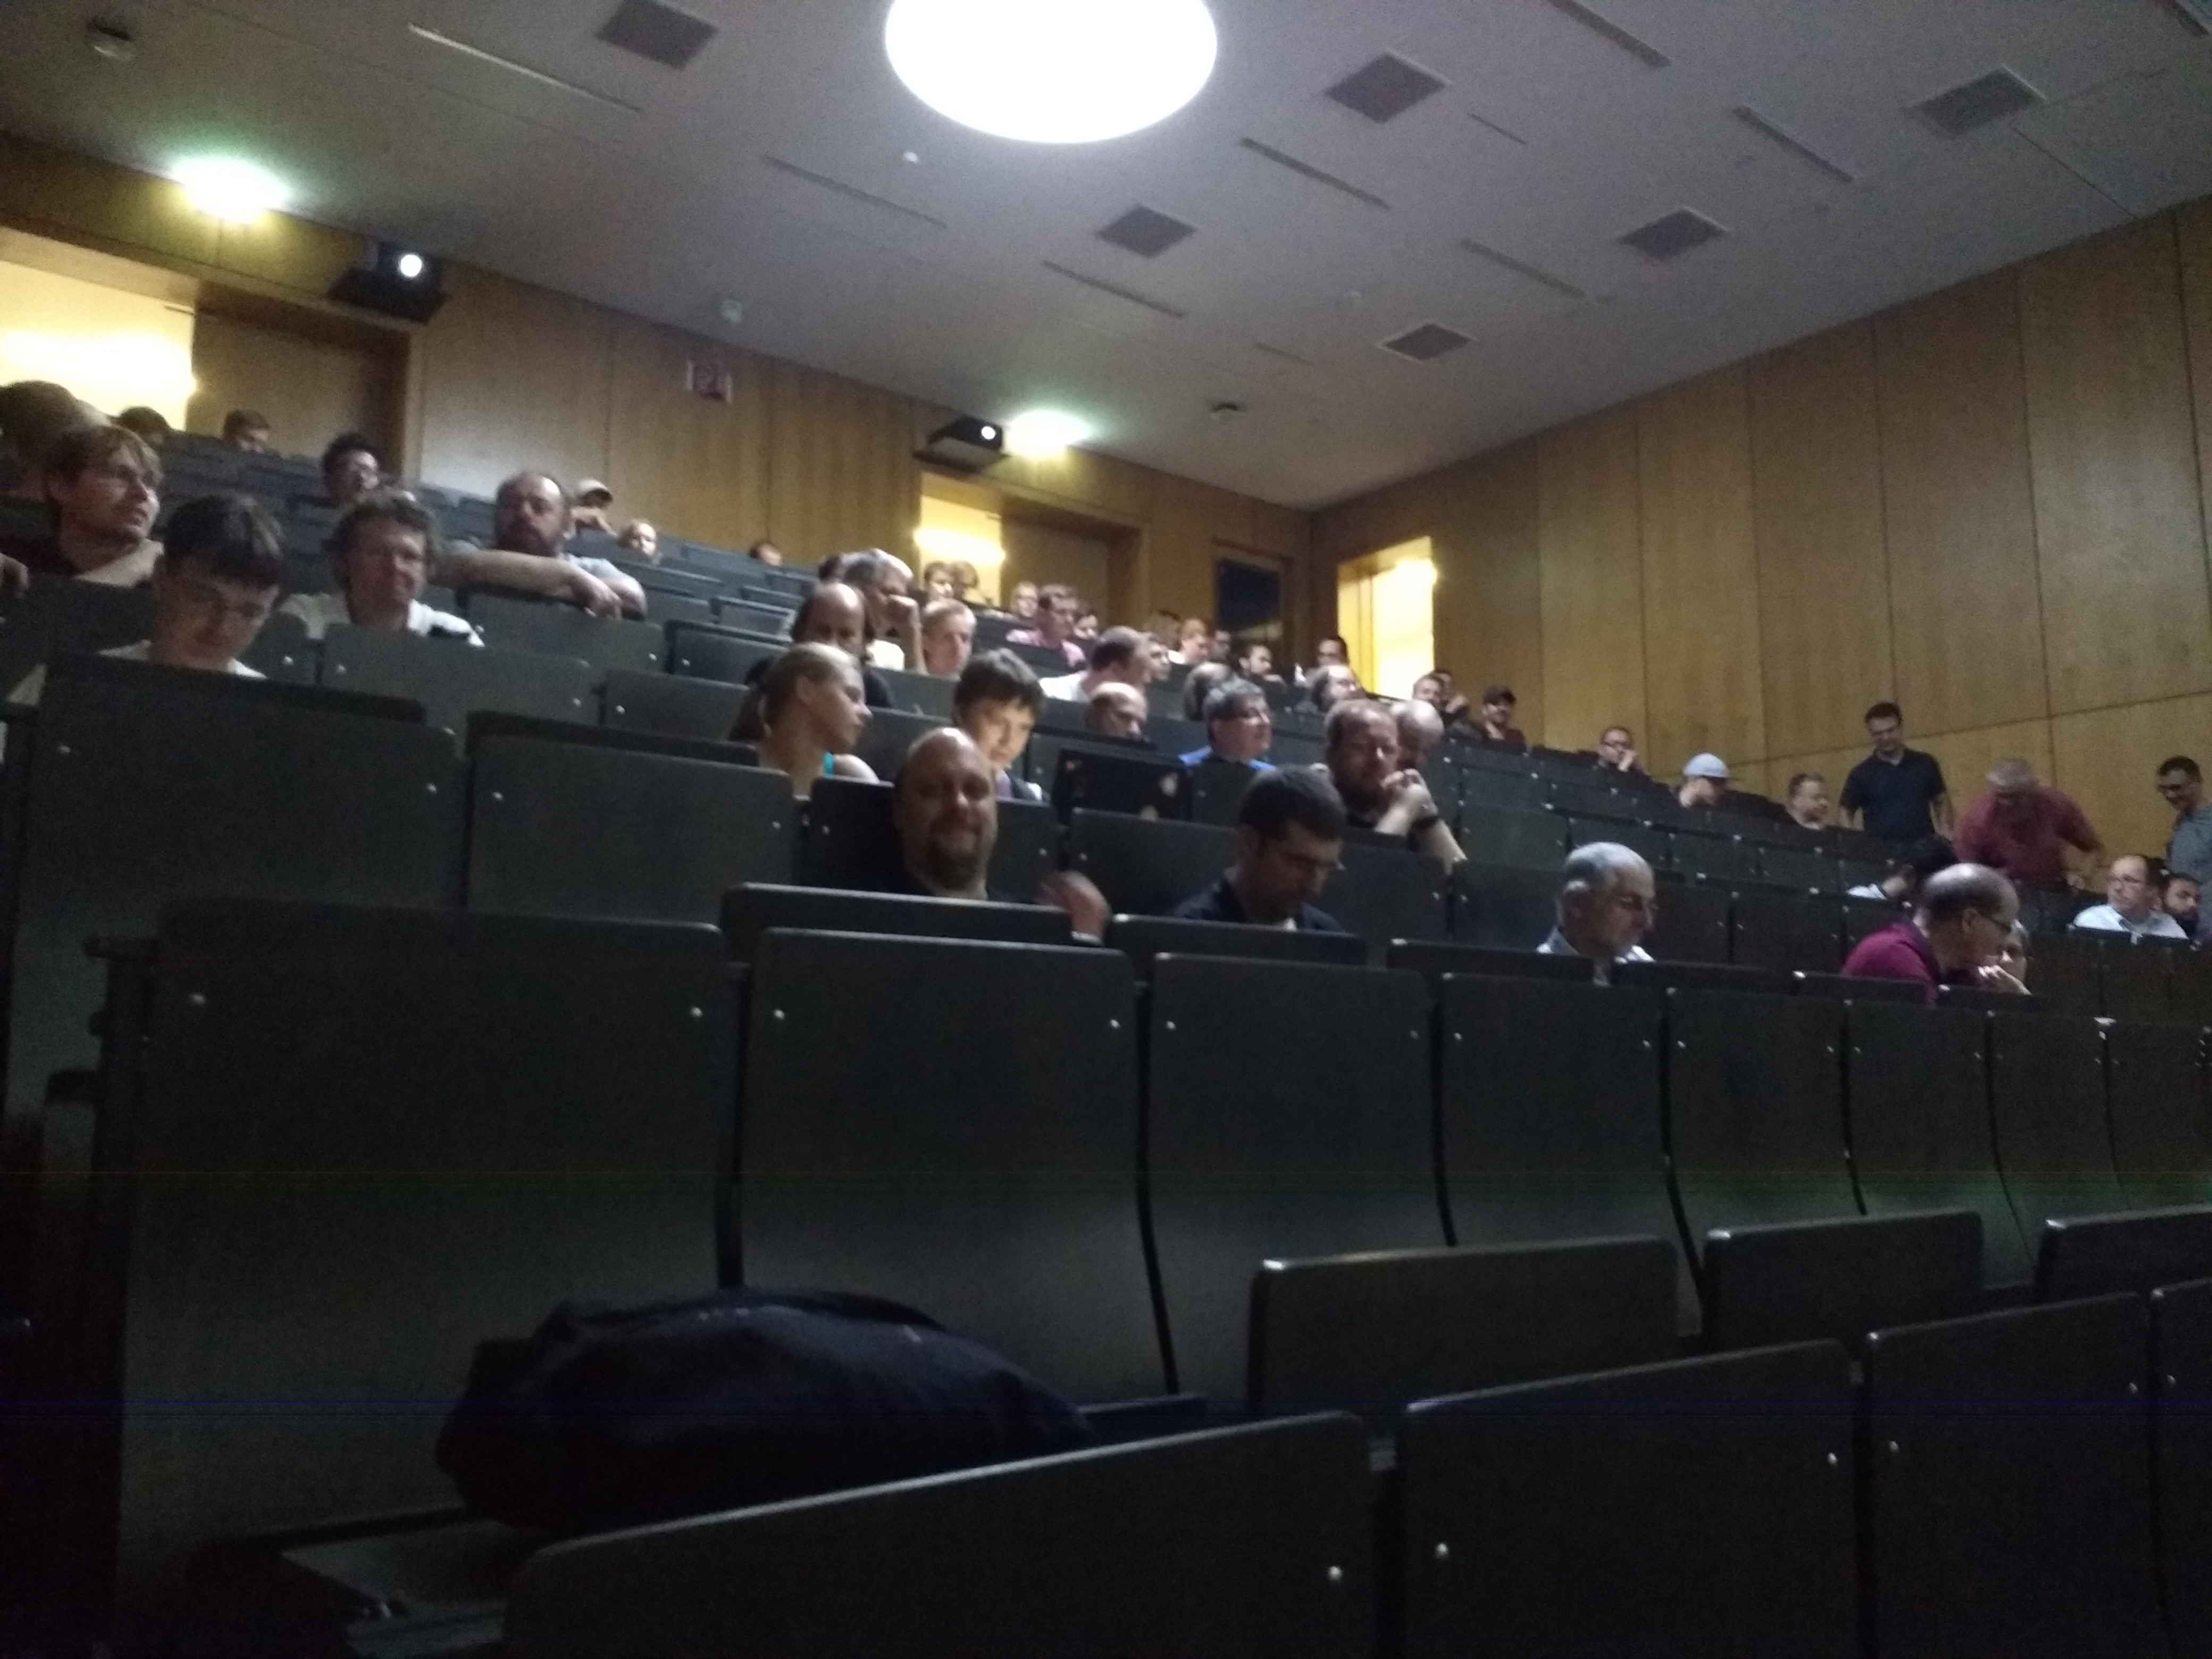 Audience, 10 minutes before the talk